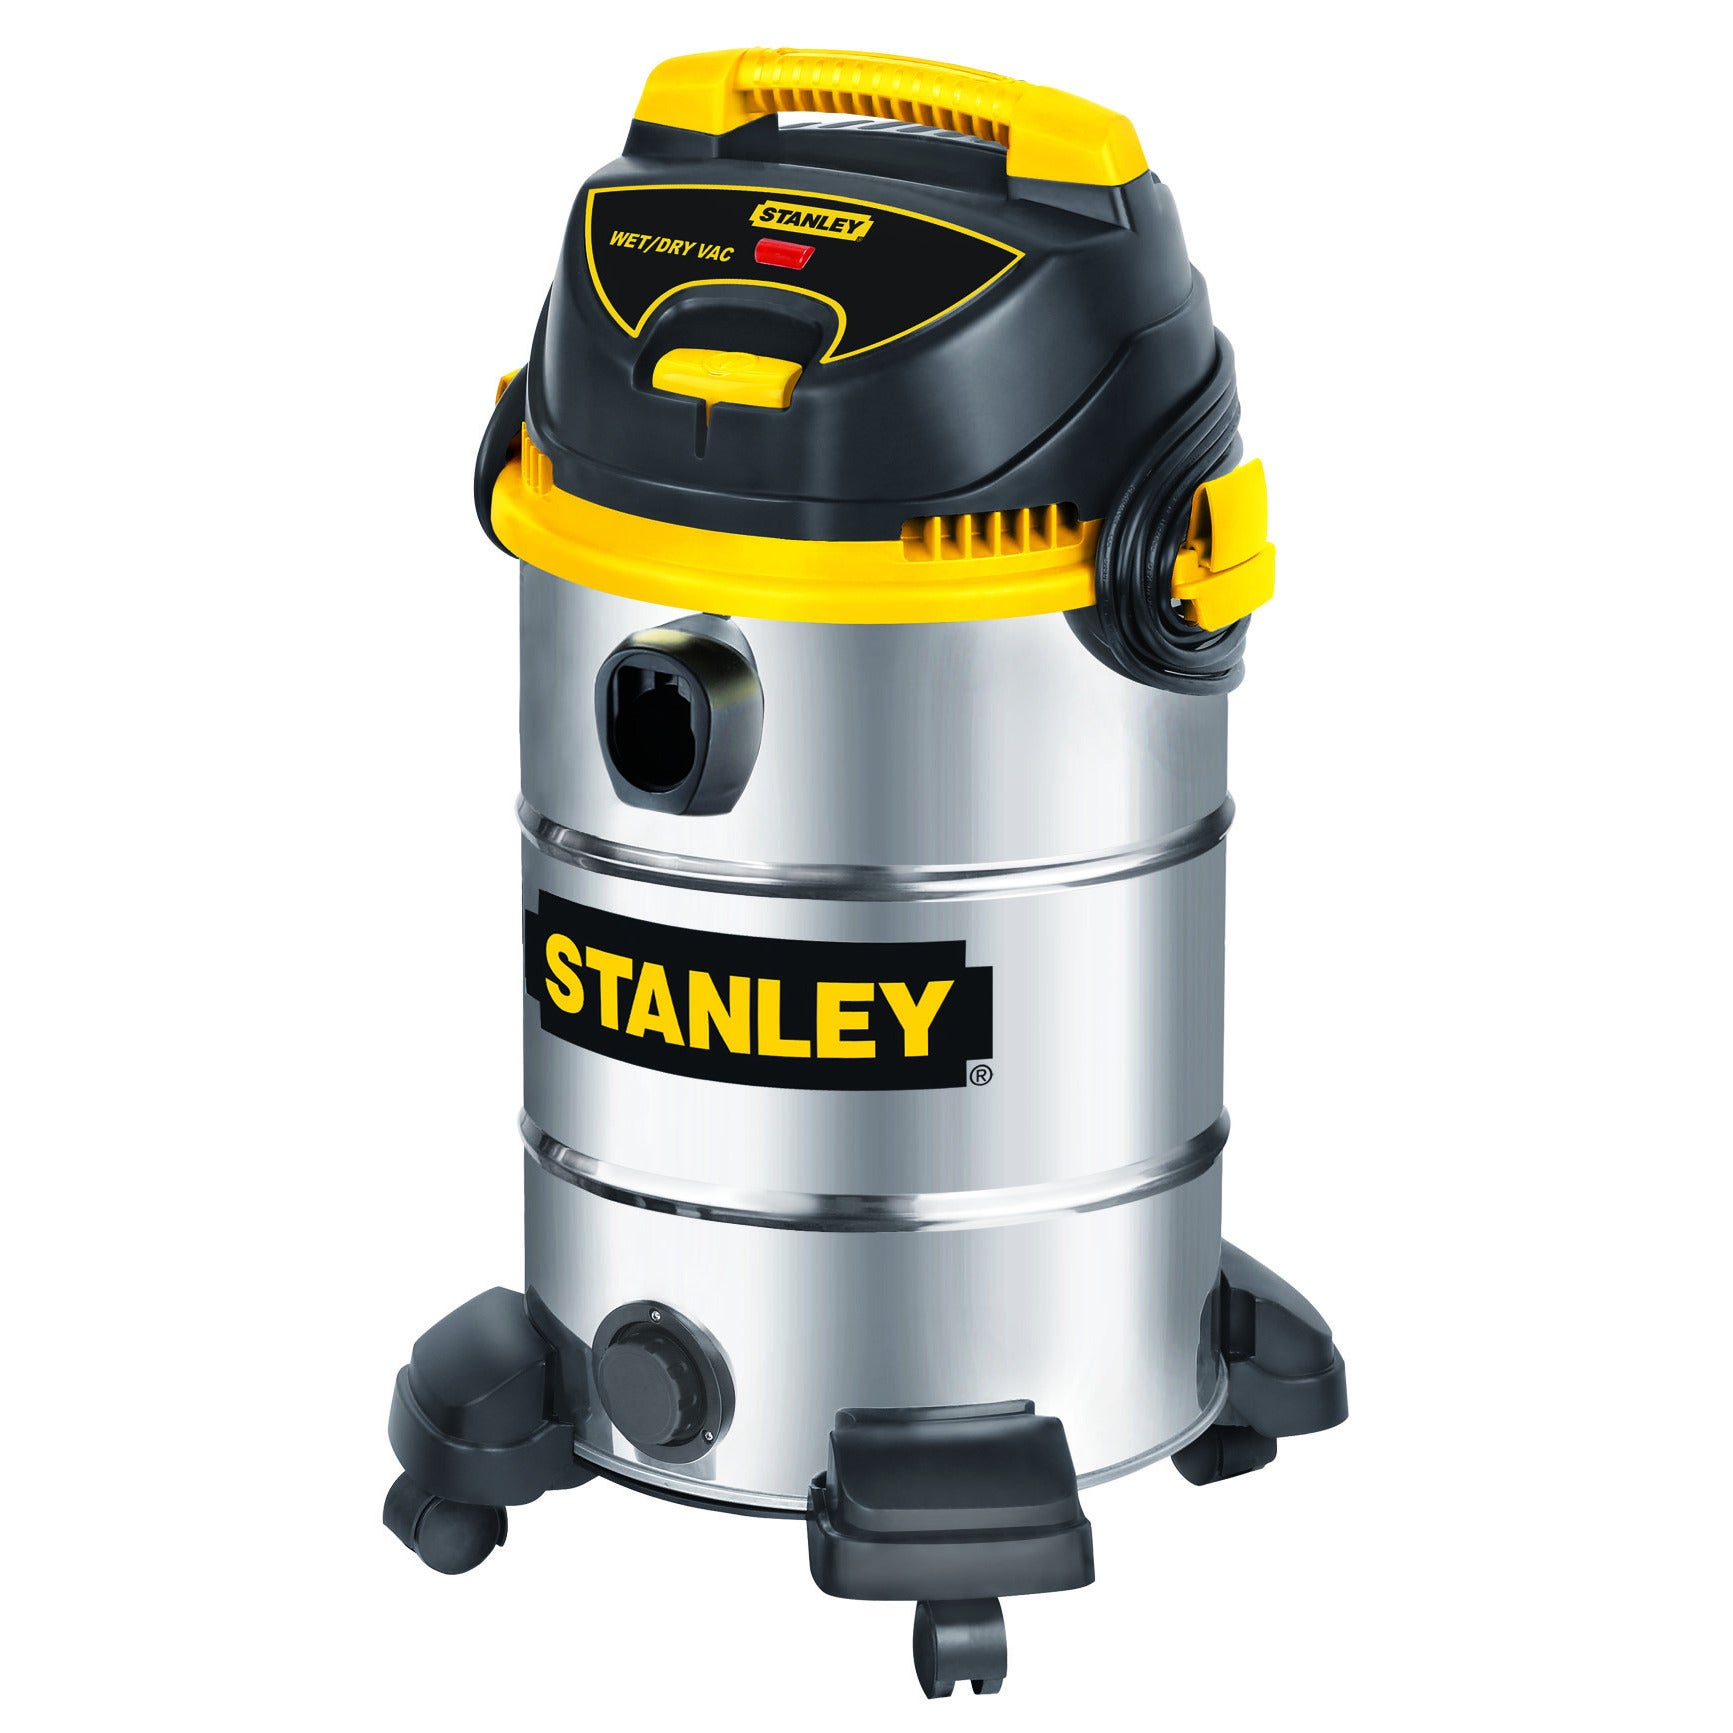 Stanley Stainless Steel Wet and Dry 8-gallon Vacuum at Sears.com